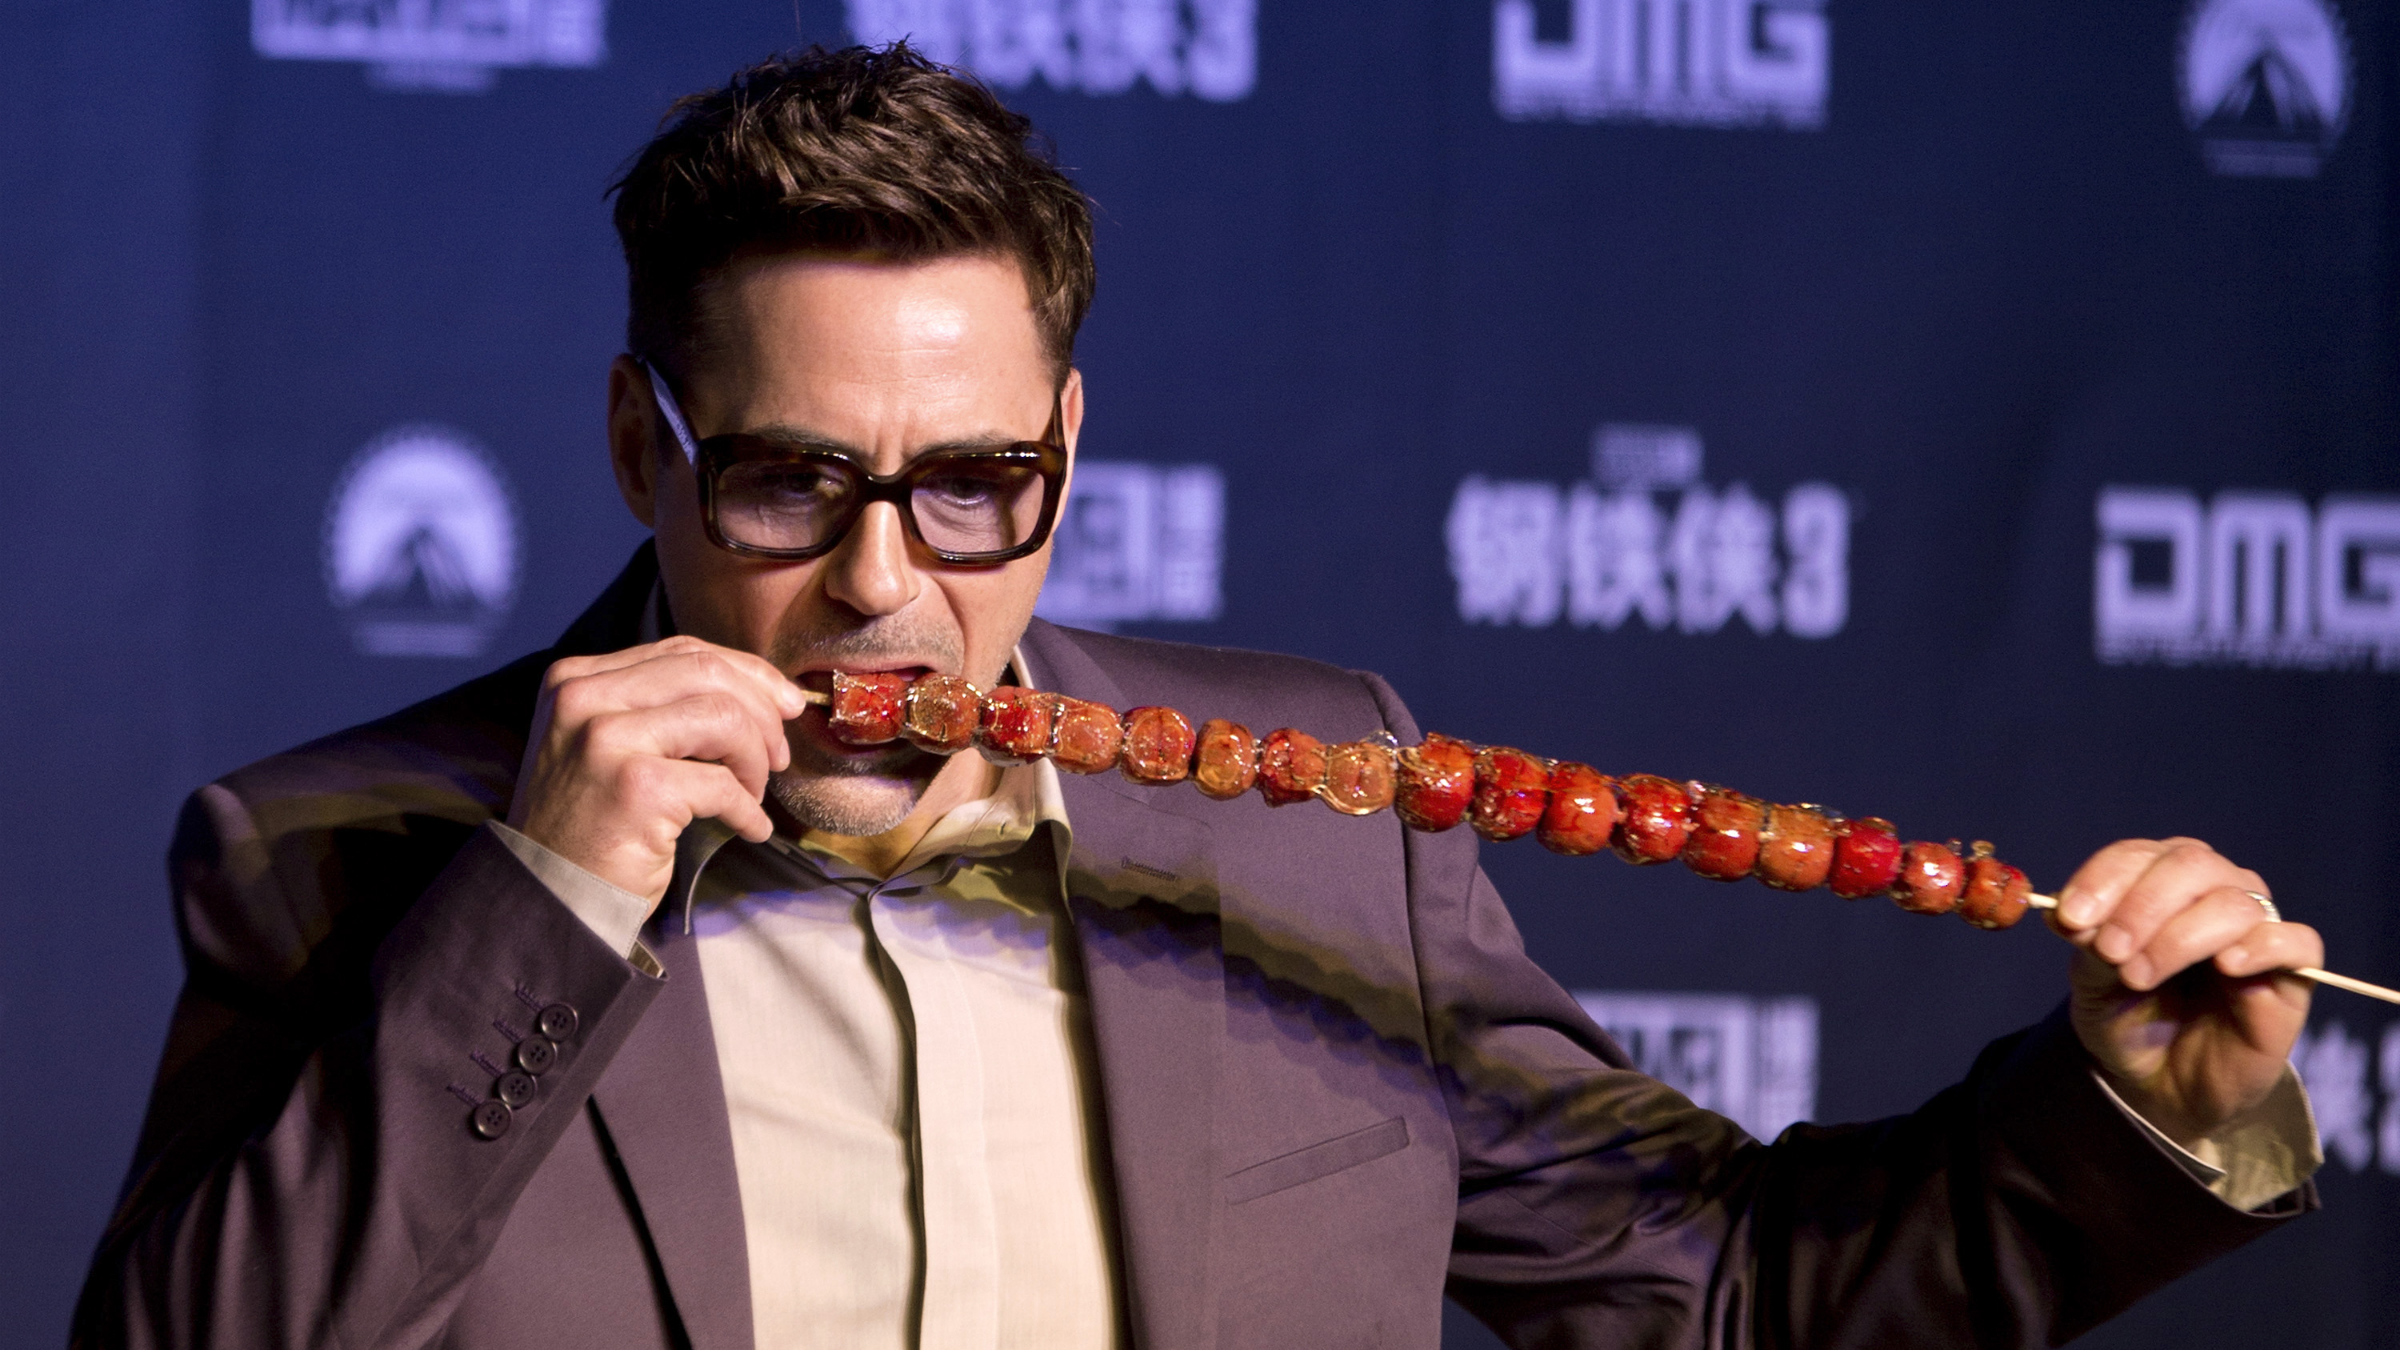 """U.S. actor Robert Downey Jr. tries out """"bingtanghulu,"""" a traditional Chinese snack, during a world premiere event of his new movie """"Iron Man 3"""" at a Beijing hotel Saturday, April 6, 2013. (AP Photo/Andy Wong"""